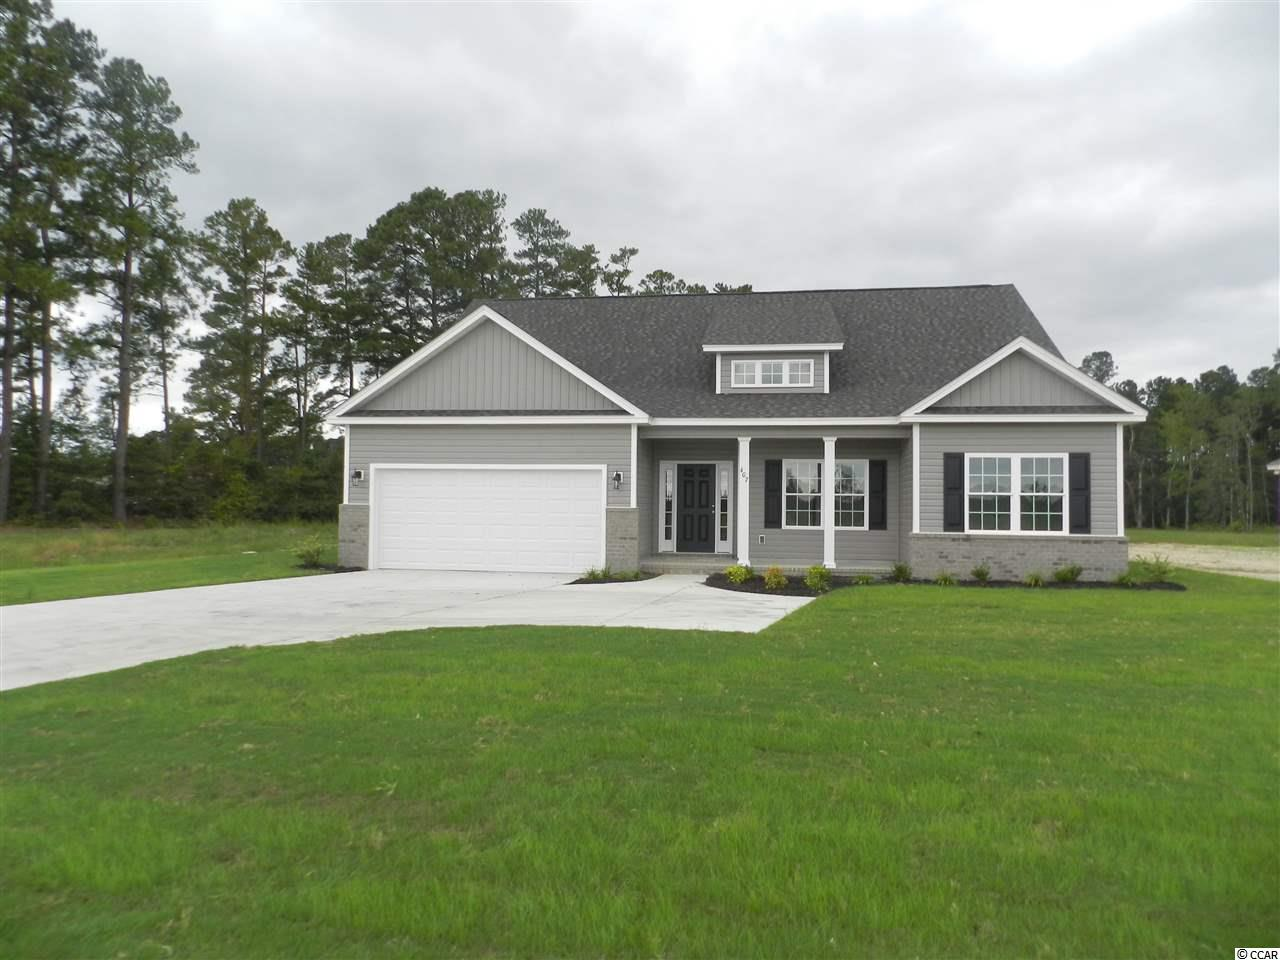 New construction! This beautiful three bedroom, 2 full bath custom home is on a .69 acre lot, minutes from downtown Conway! This home is the very popular Sullivan floor plan. Beautiful open kitchen with white cabinets, granite counter tops and stainless appliances, as well as subway tile backsplash. The spacious family room has a vaulted ceiling, waterproof laminate flooring and ceiling fan. The Dining area has picture frame wainscoting and also waterproof laminate flooring. The large Master Bedroom features a tray ceiling, a huge walk-in closet, double sink vanity and a linen closet. Home has a split bedroom plan with two guest bedrooms and a bath as well. There is also a covered porch and a patio. Photos are of a completed, similar home in another neighborhood and may have different features. Home is currently under construction and will be done July 2019.